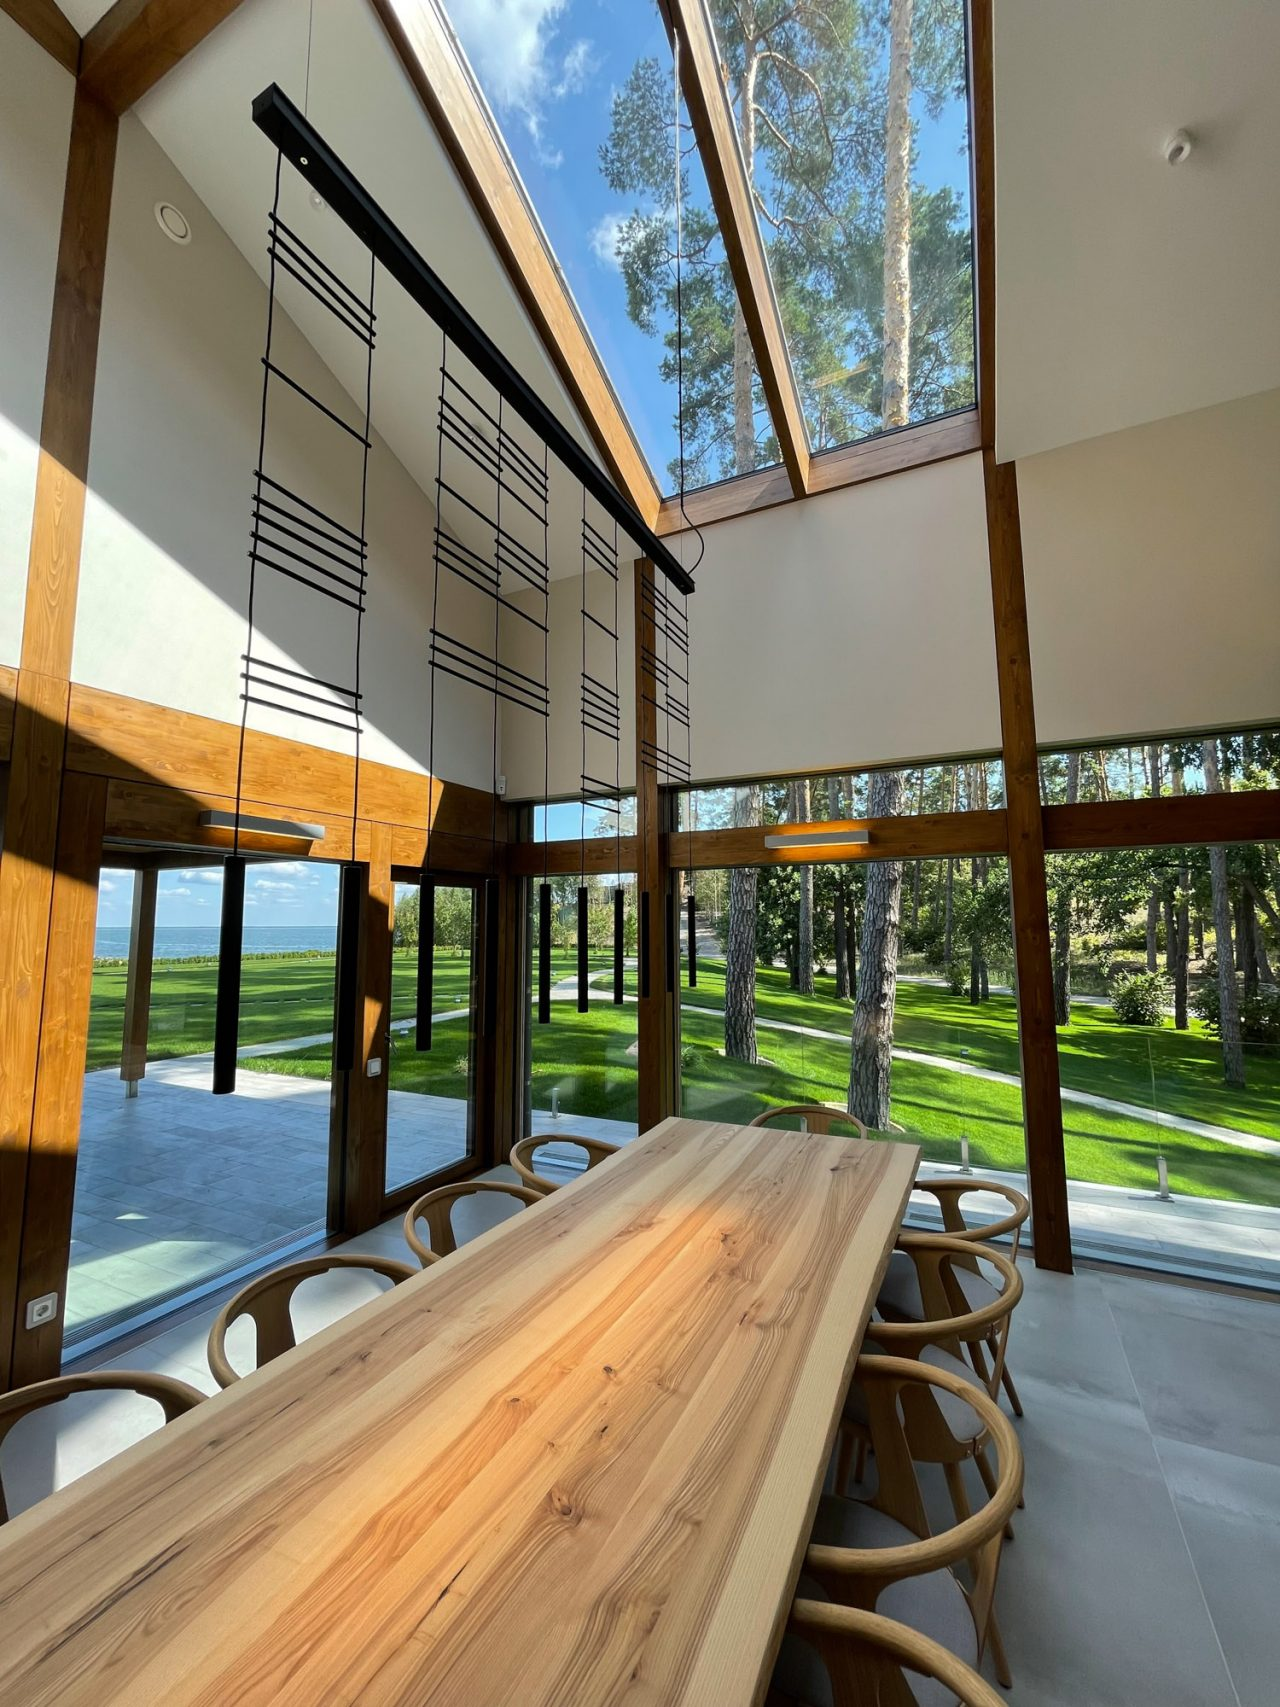 Hlass_house_KAGER - Hurii_08